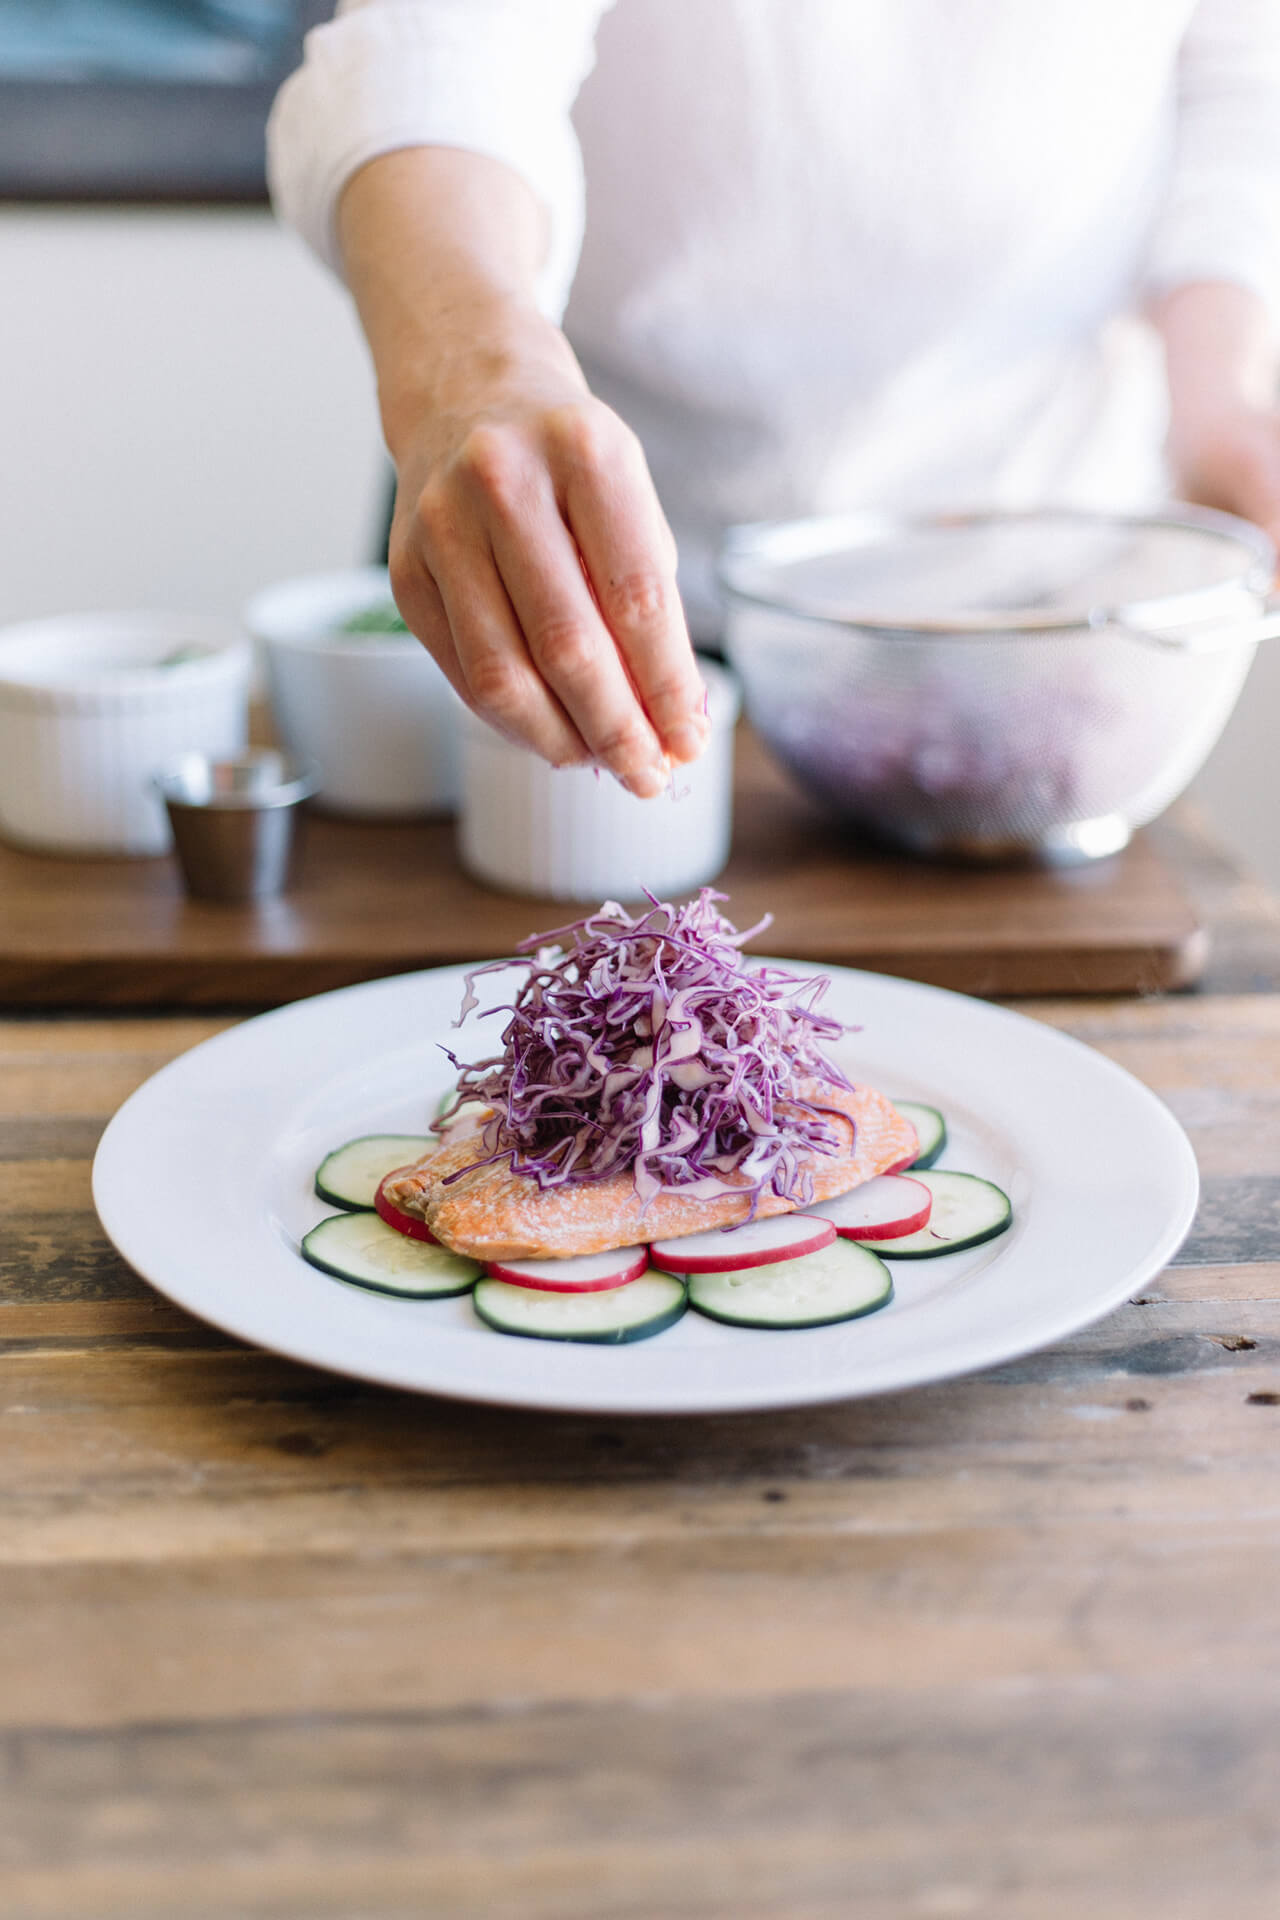 salmon as a pregnancy superfood plus a delicious recipe for roasted salmon with lemon aioli and slaw